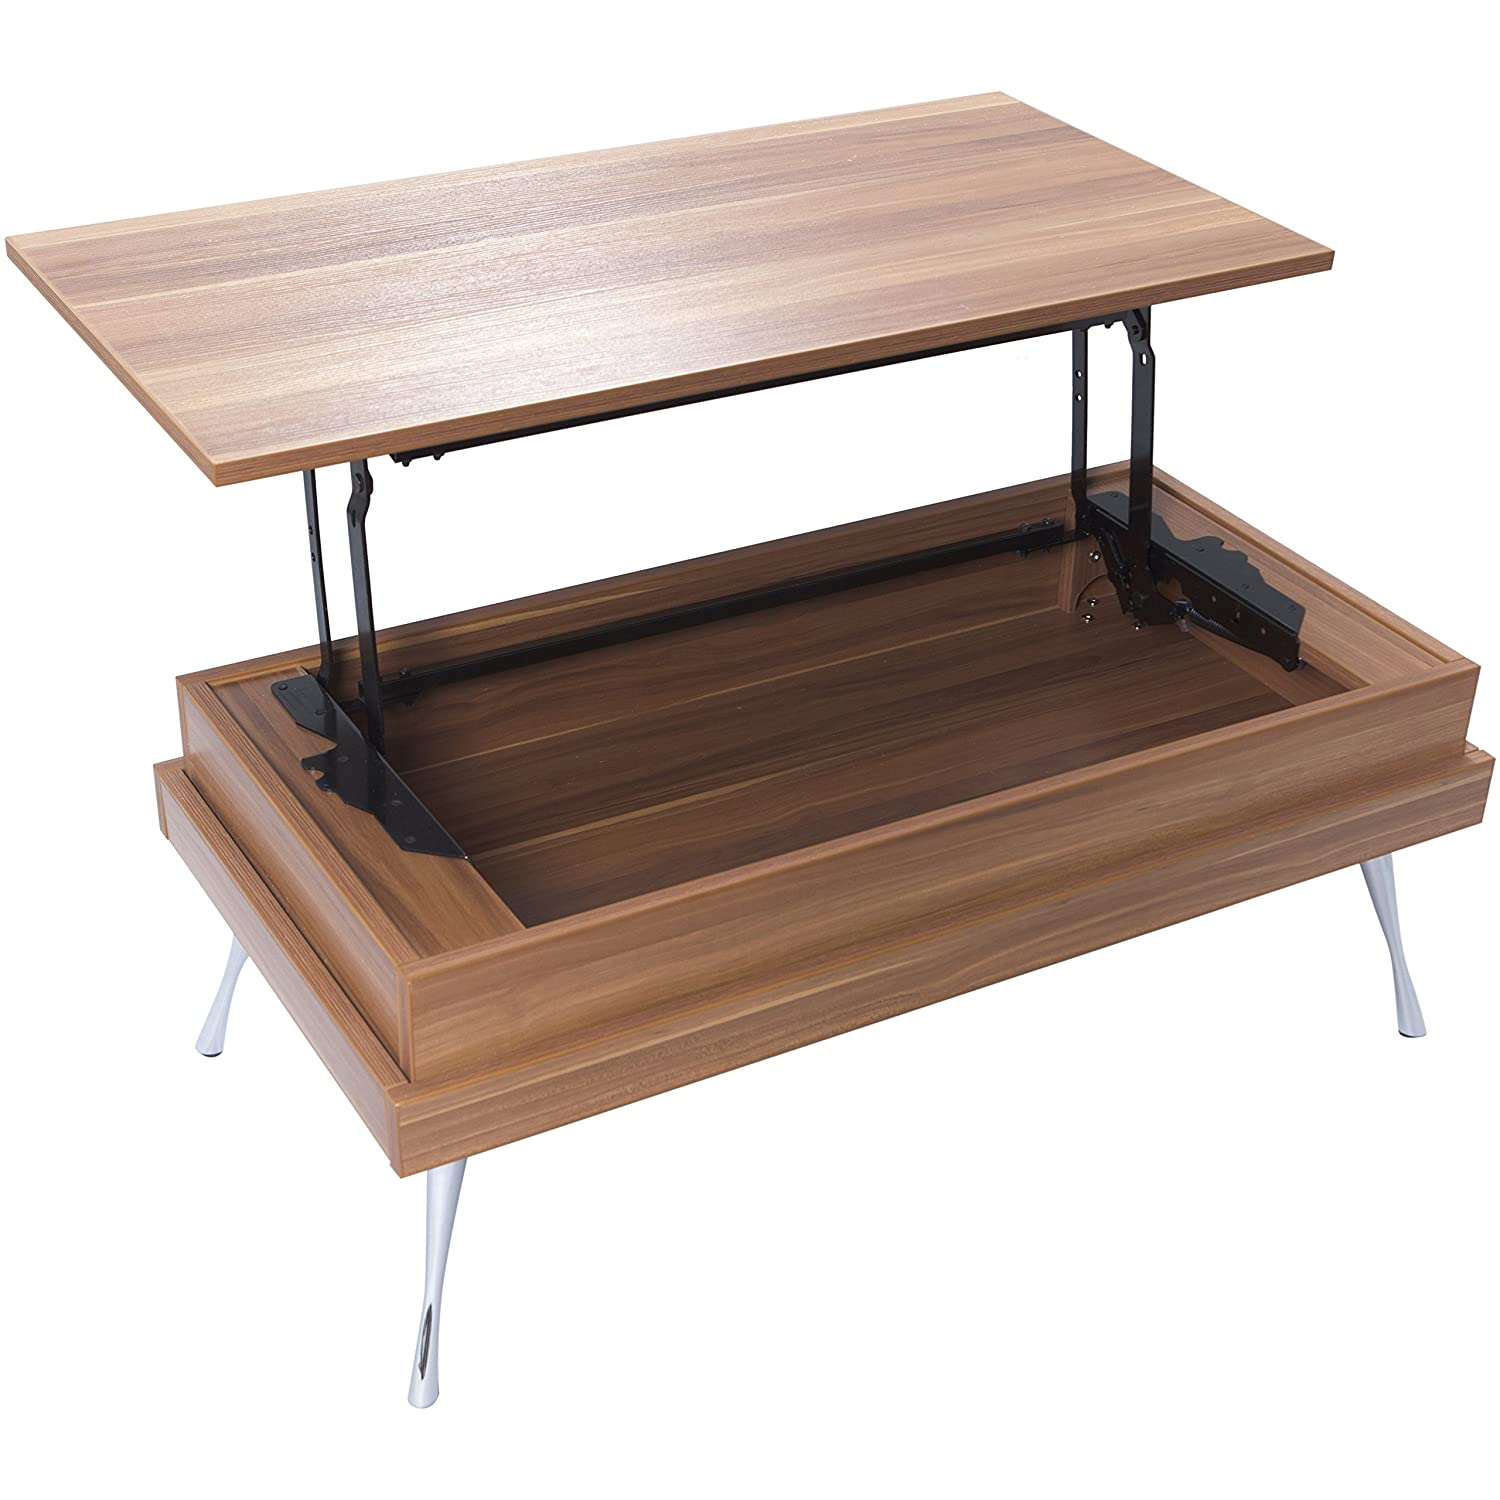 Amazon MIX Laminate Wood Chrome Legs Walnut Lift Top